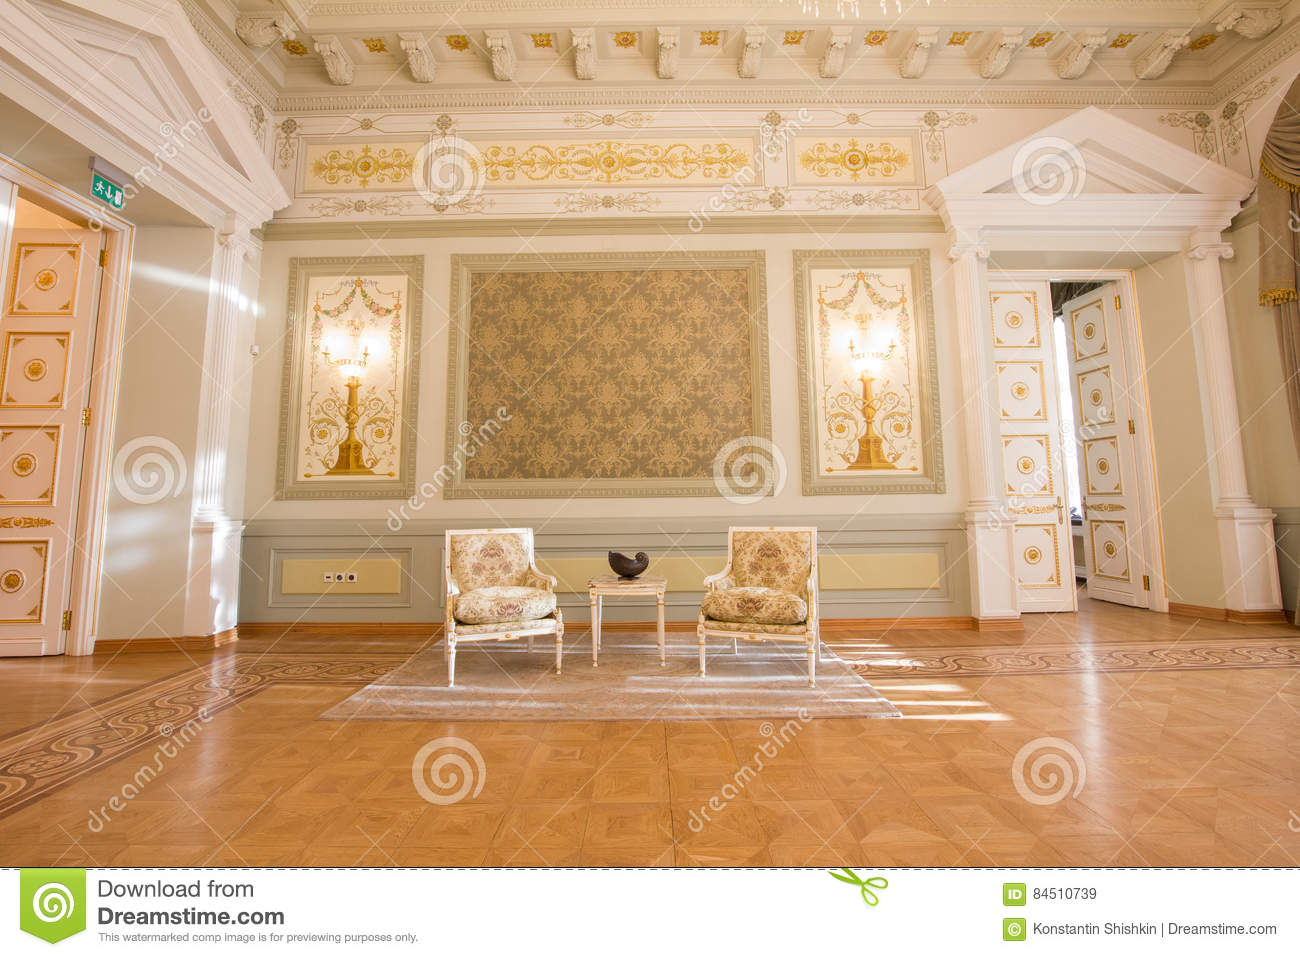 KAZAN, RUSSIA - 16 JANUARY 2017, City Hall - luxury and beautiful touristic place - antique furniture in the interior